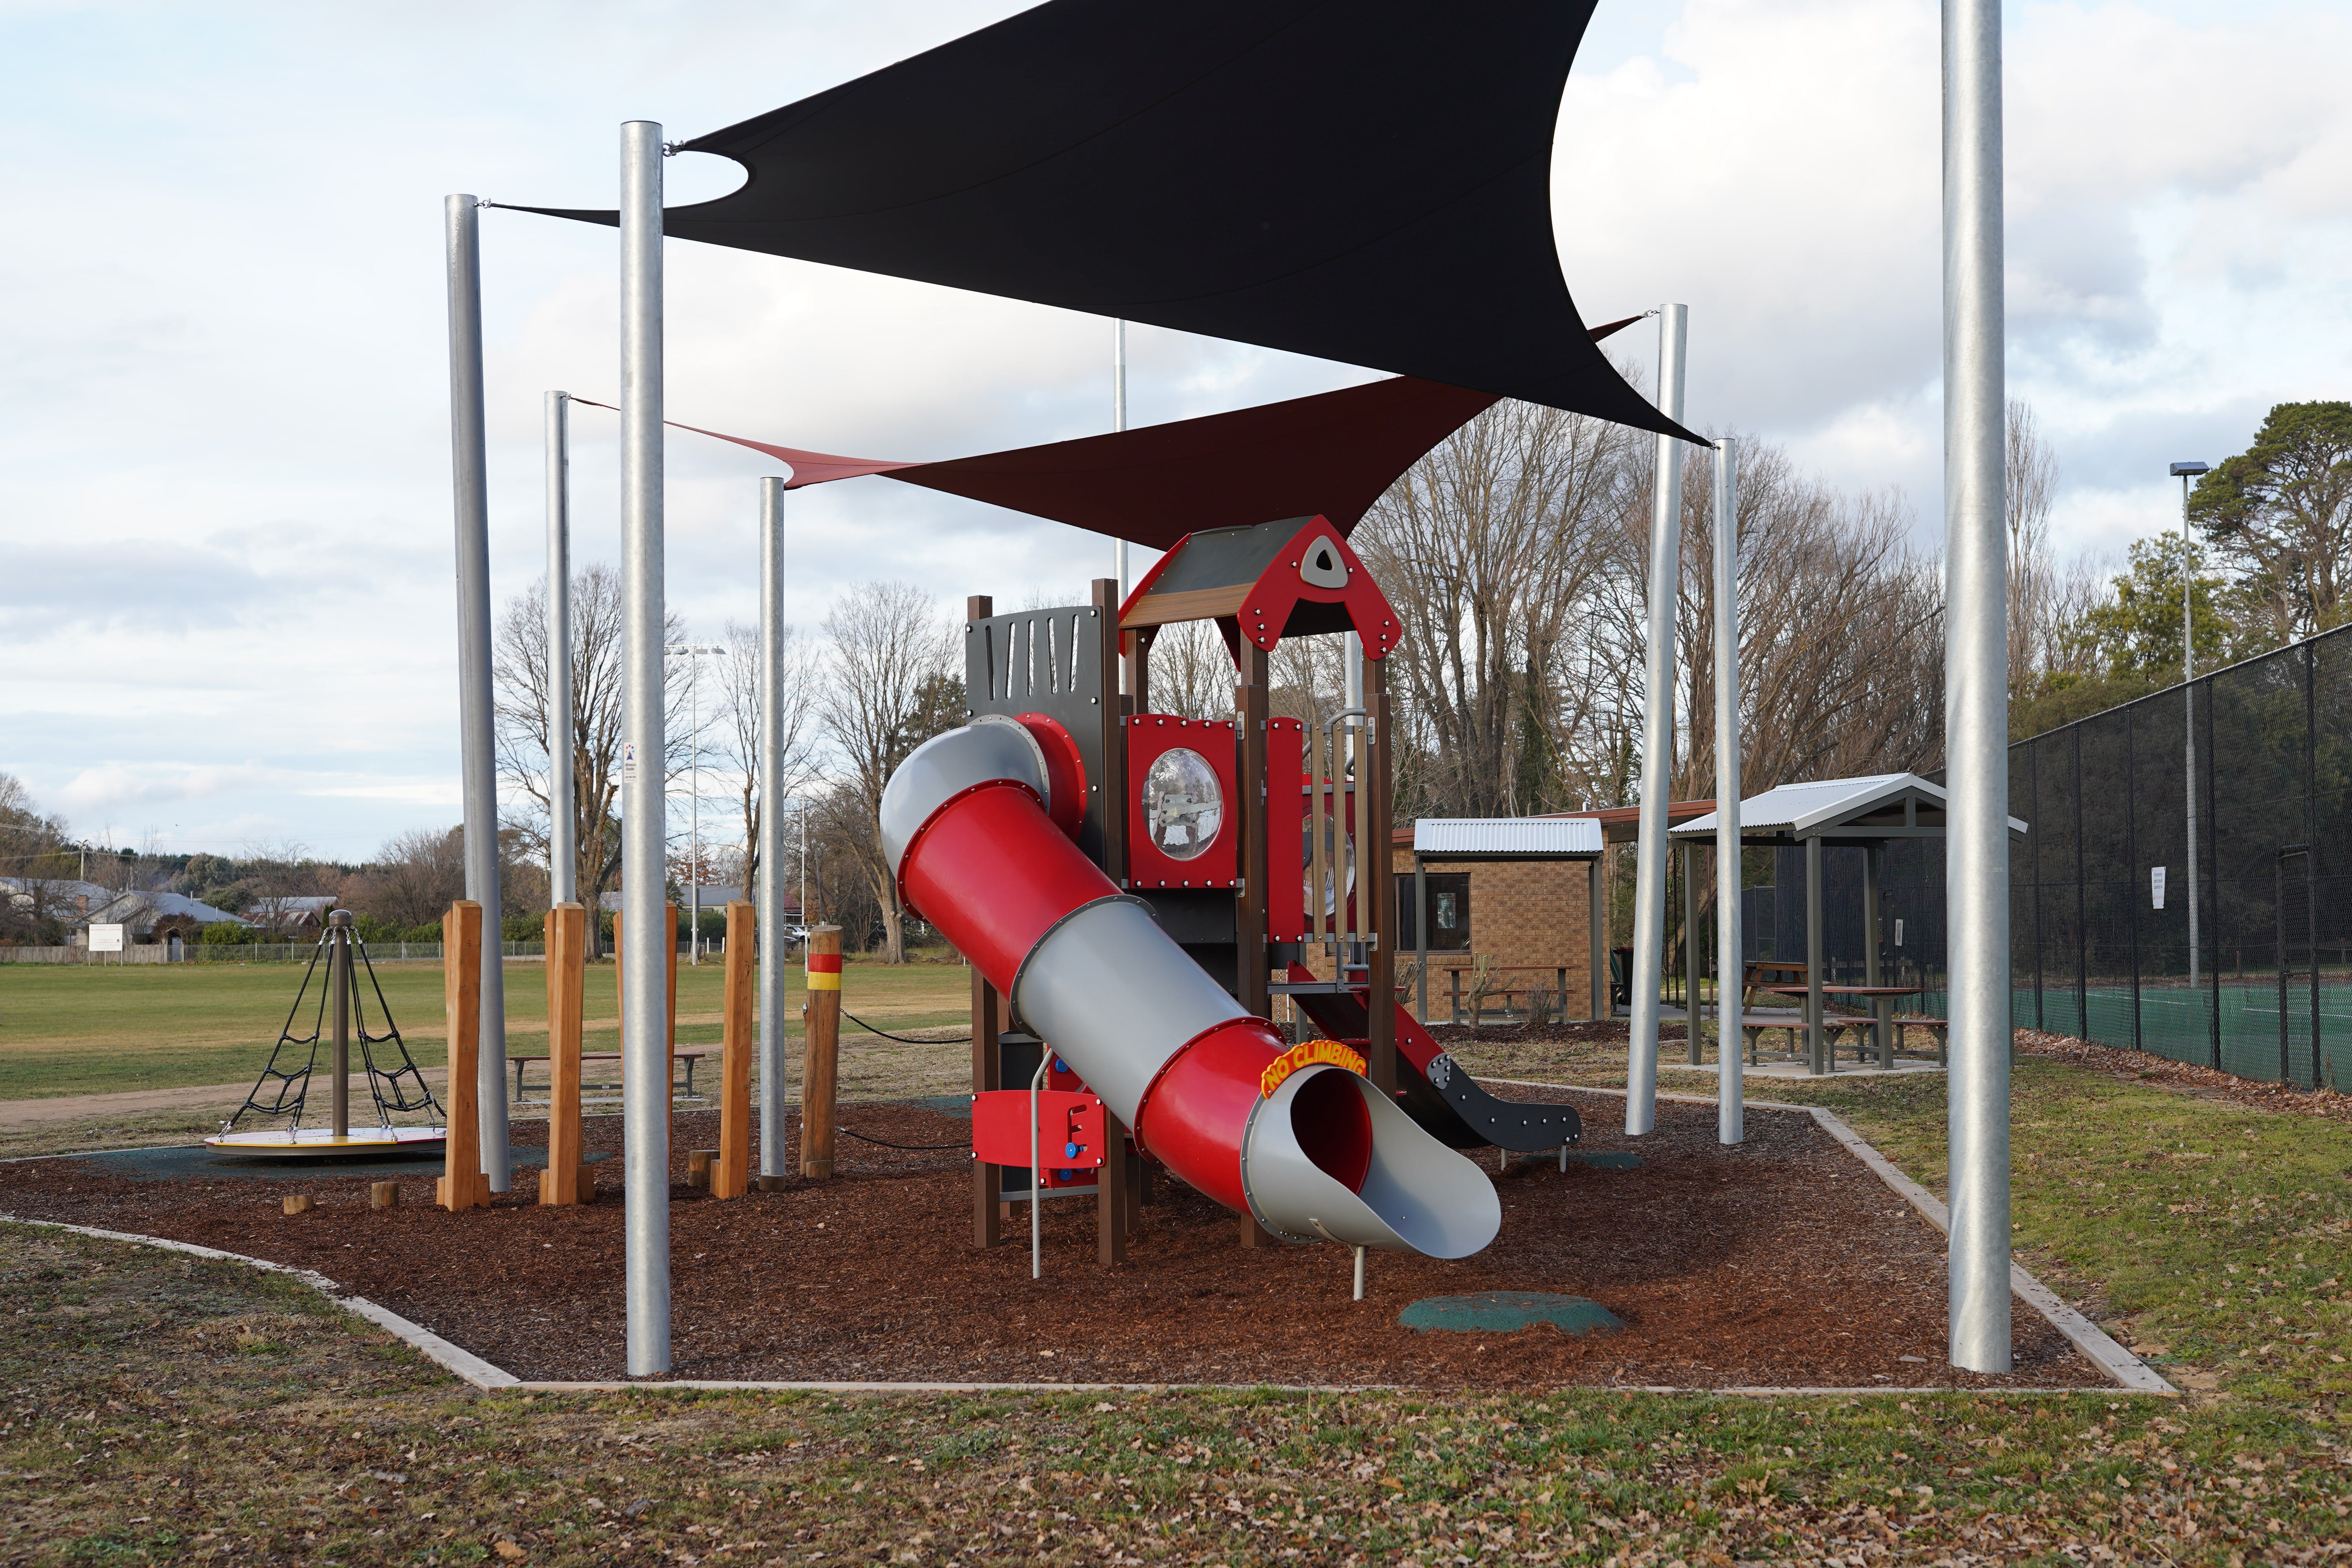 Braidwood Recreation Grounds and Playground - Accommodation in Bendigo